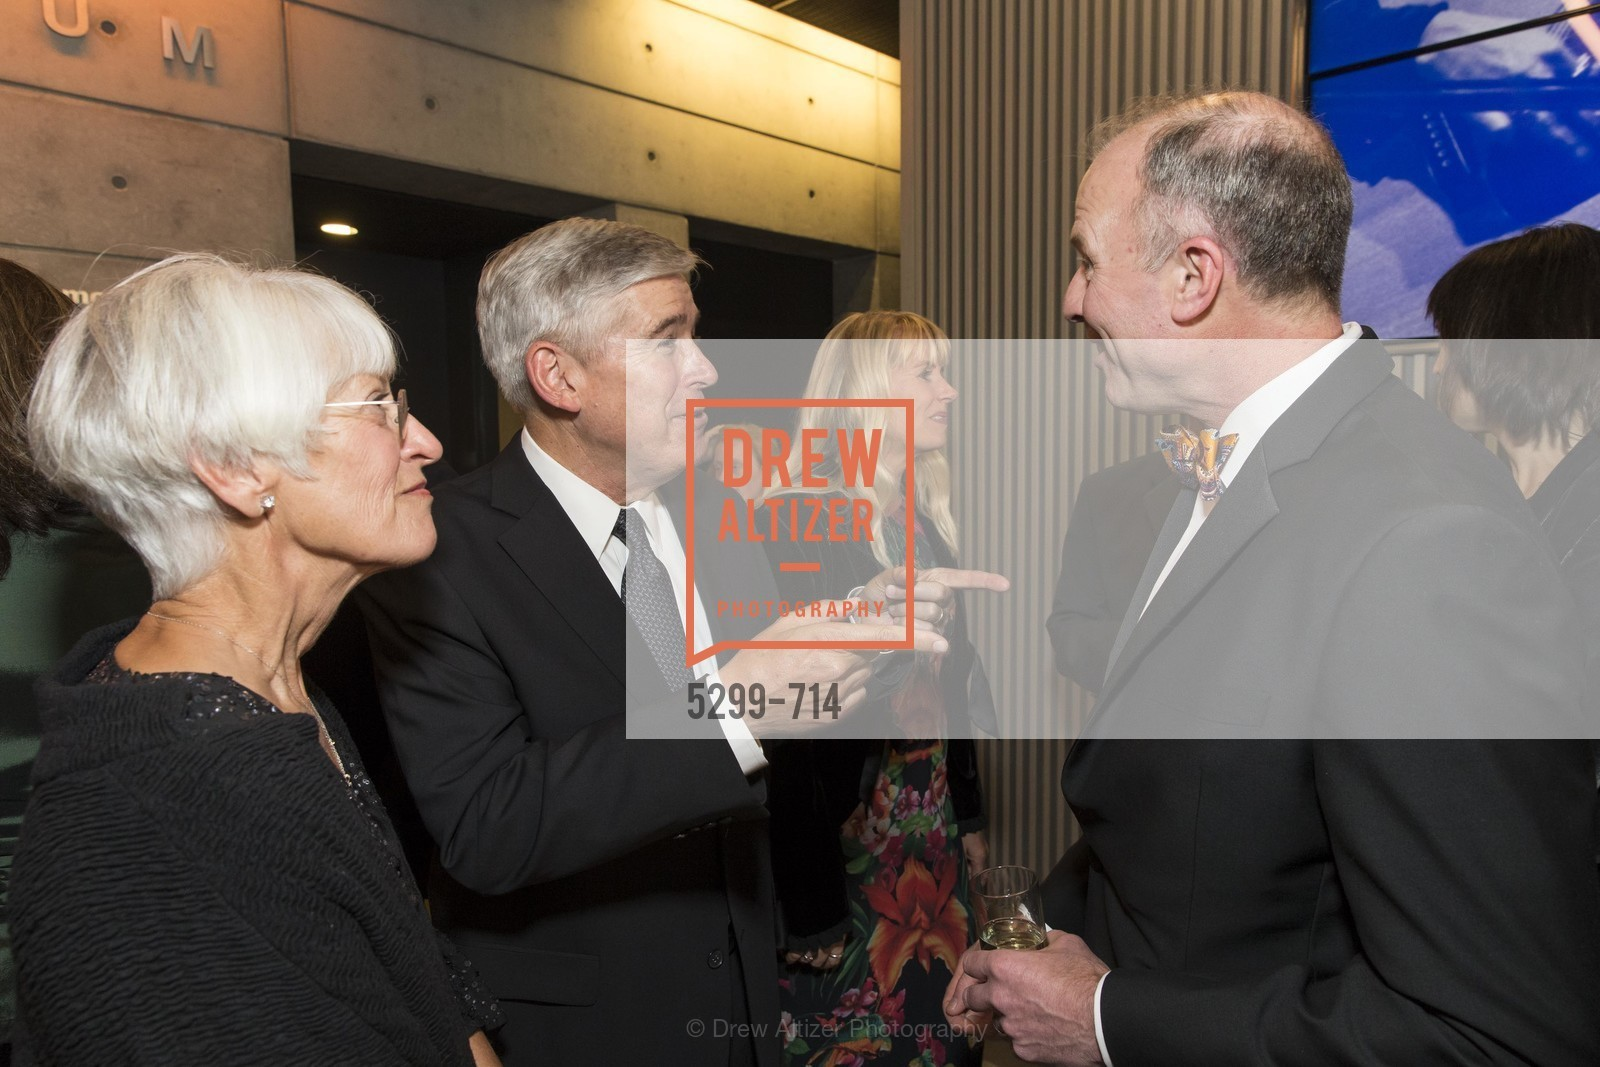 James McElwee, Suzanne McElwee, Don Derheim, SFJAZZ Gala 2015 Honors Joni Mitchell with Lifetime Achievement Award, US, May 9th, 2015,Drew Altizer, Drew Altizer Photography, full-service agency, private events, San Francisco photographer, photographer california